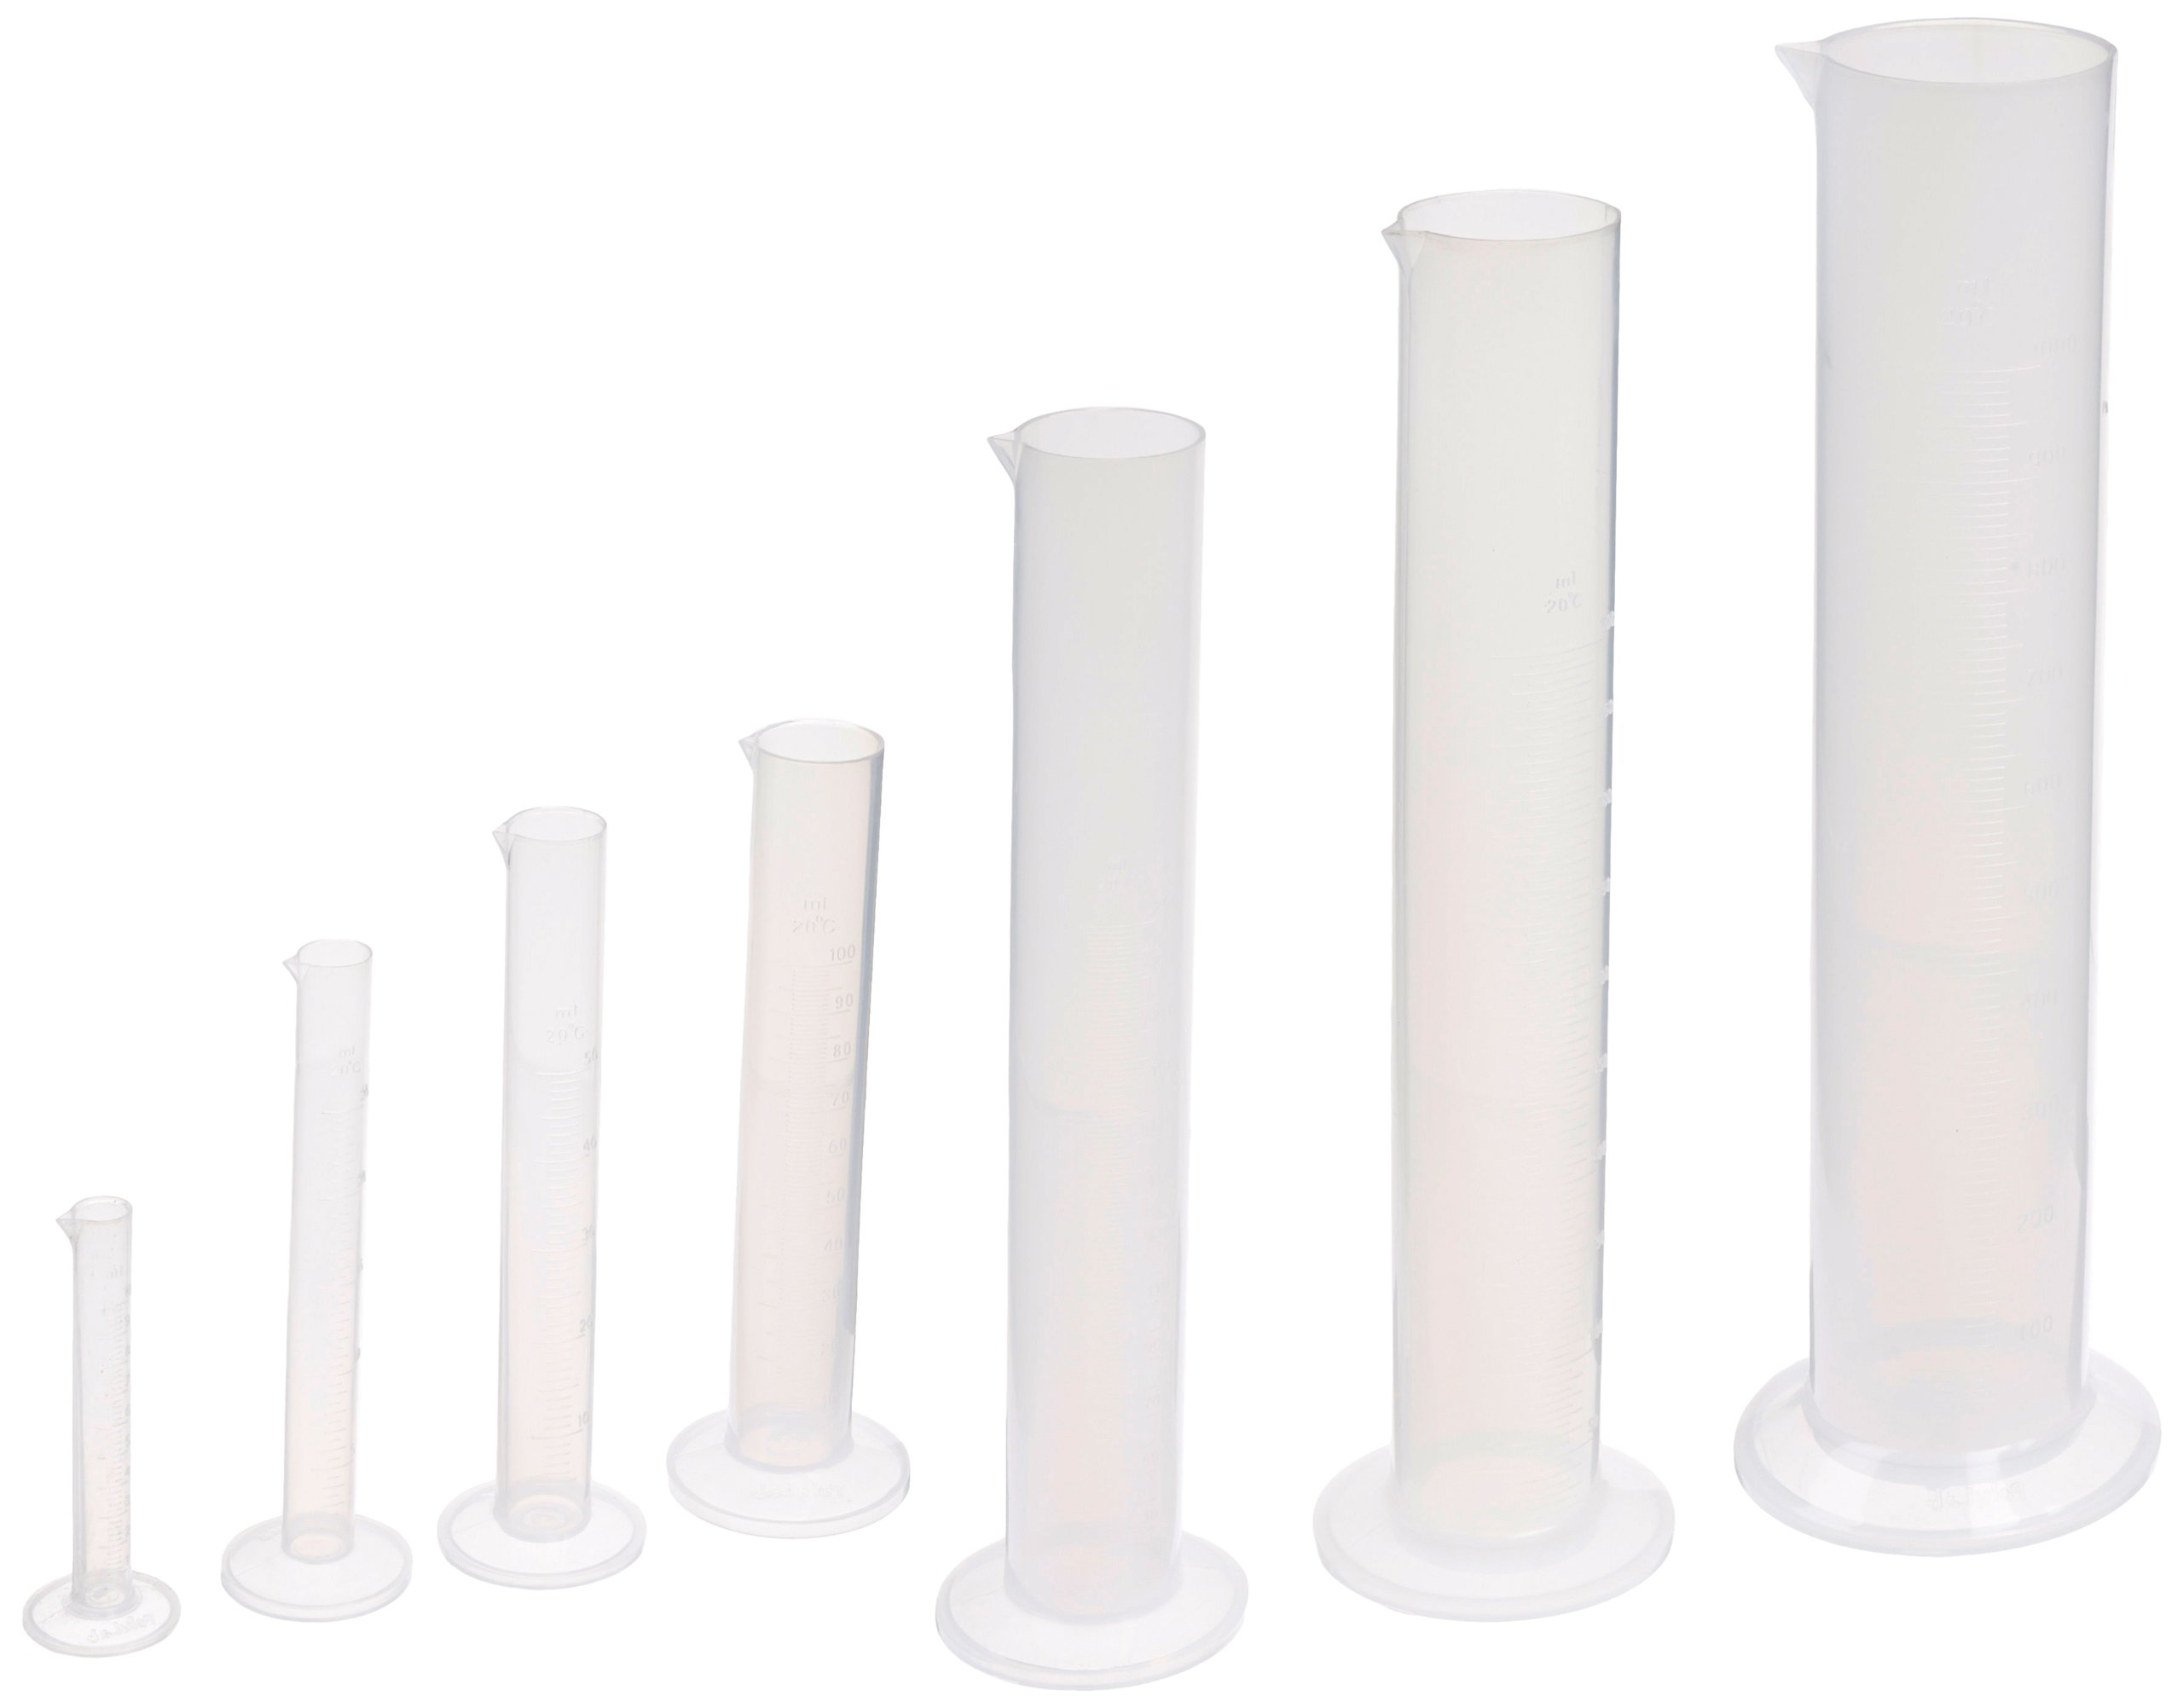 United Scientific CPSET7 Plastic Graduated Cylinder Set, Set of 7 Cylinders